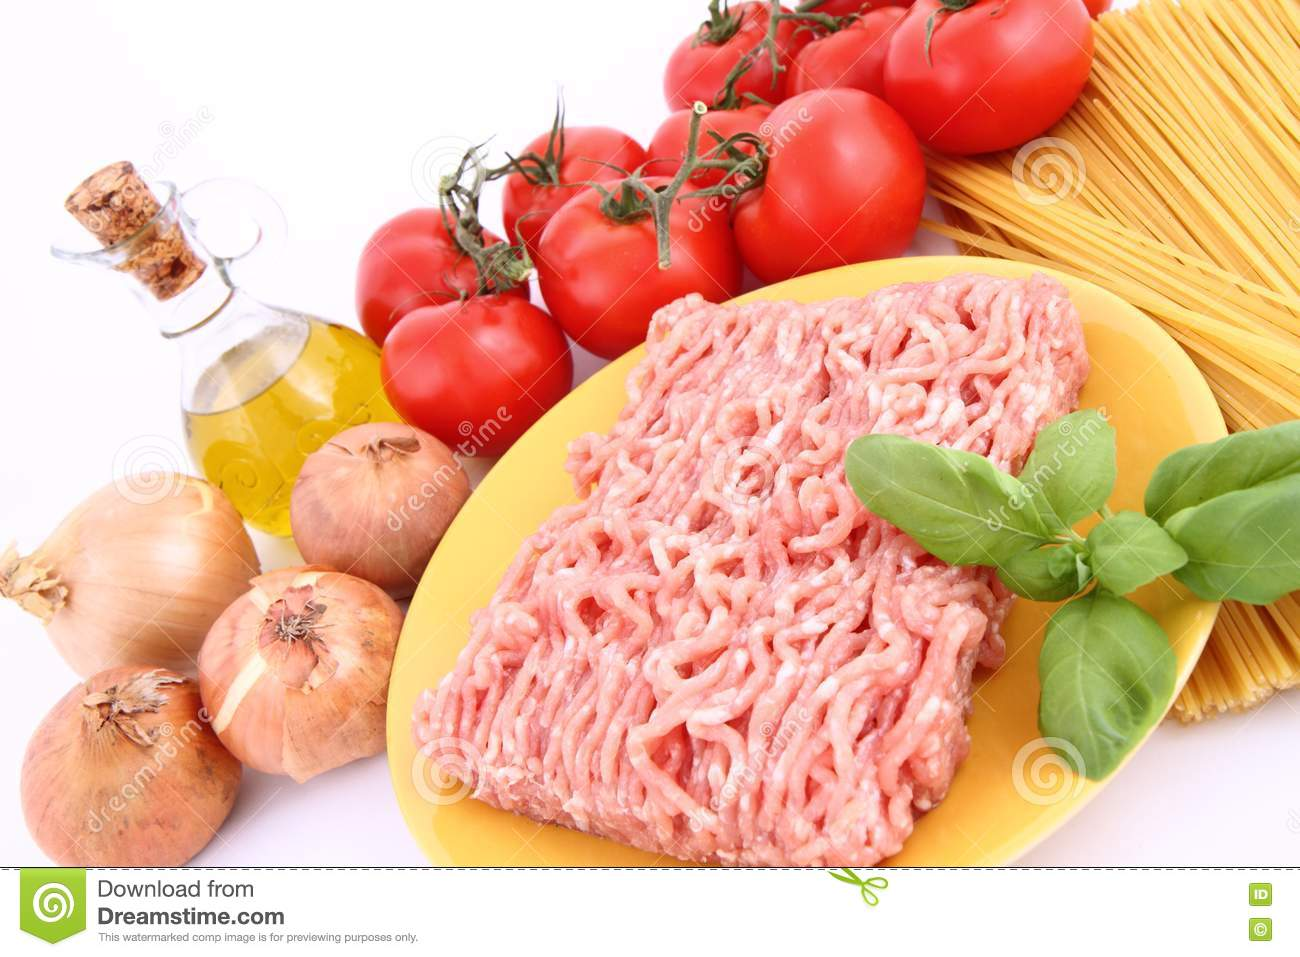 More similar stock images of spaghetti bolognese ingredients